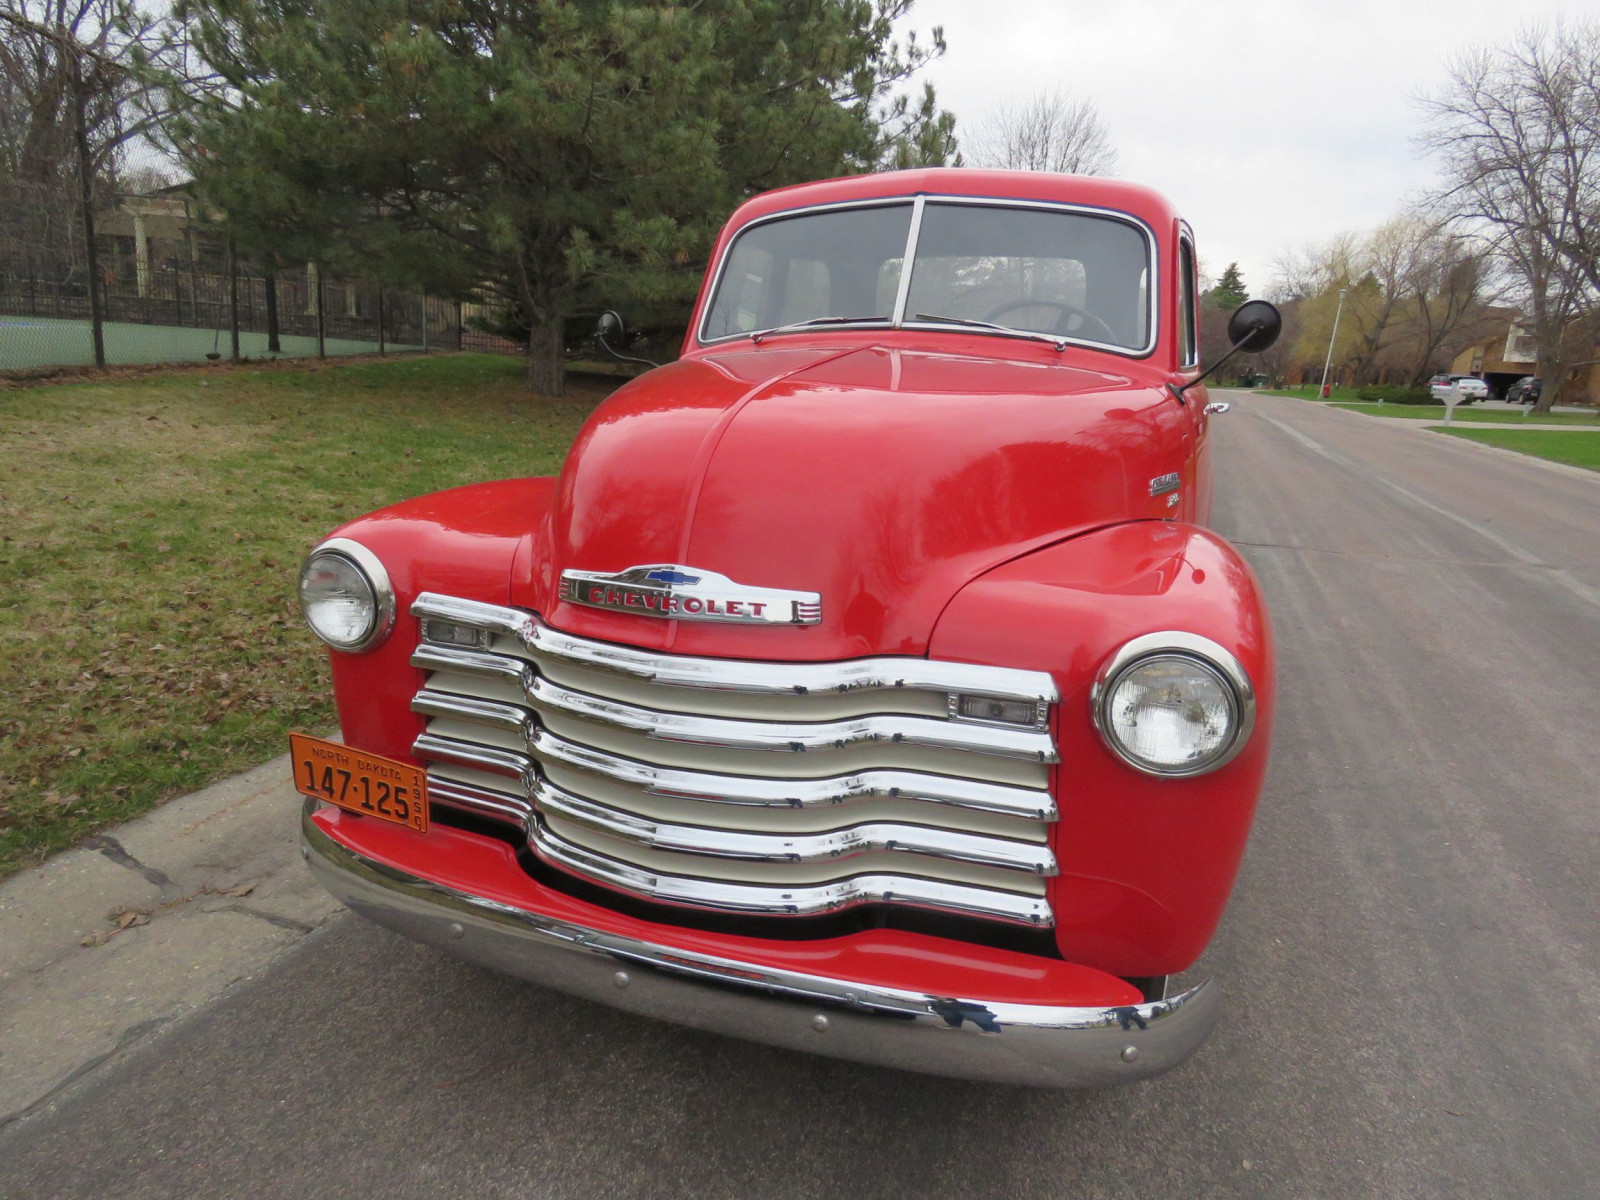 1950 Chevrolet 3100 5 window Pickup - Image 2